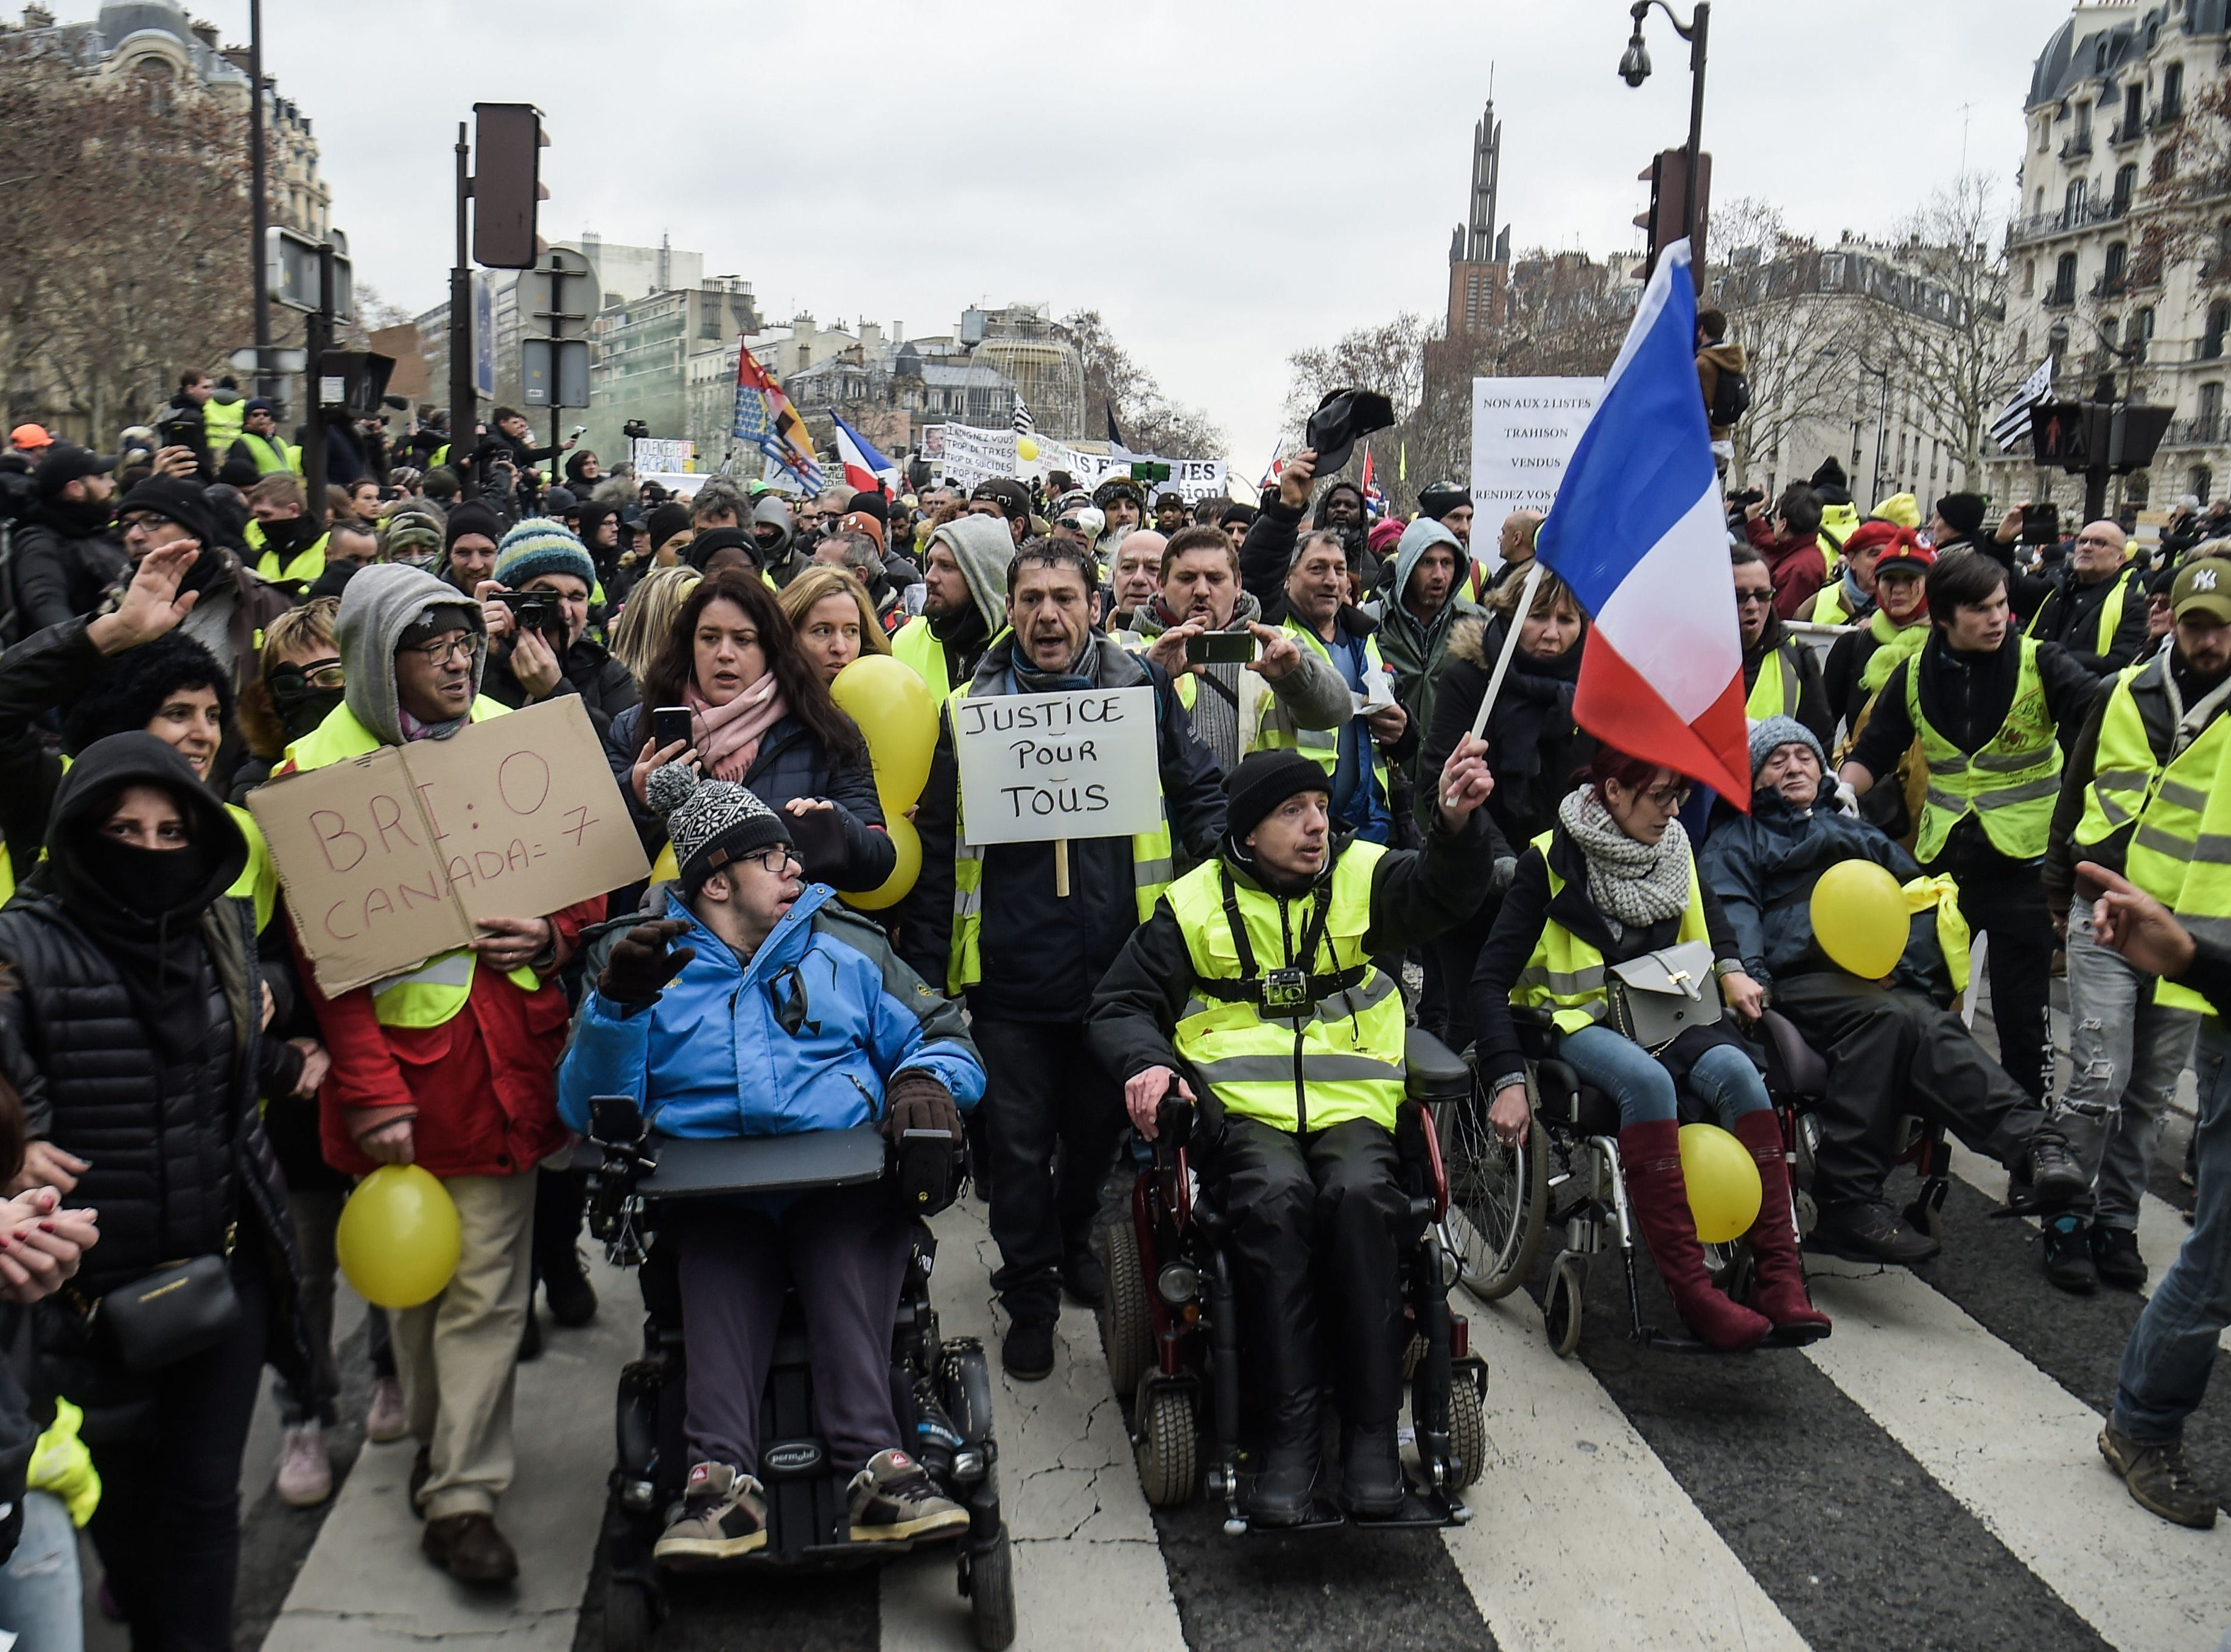 Protesters in a wheelchair take part in a march on Feb. 2, 2019 in Paris, called to pacifically protest against police violence toward participants of the last three months demonstrations in France, as Yellow Vest protesters take to the streets for the 12th consecutive Saturday.